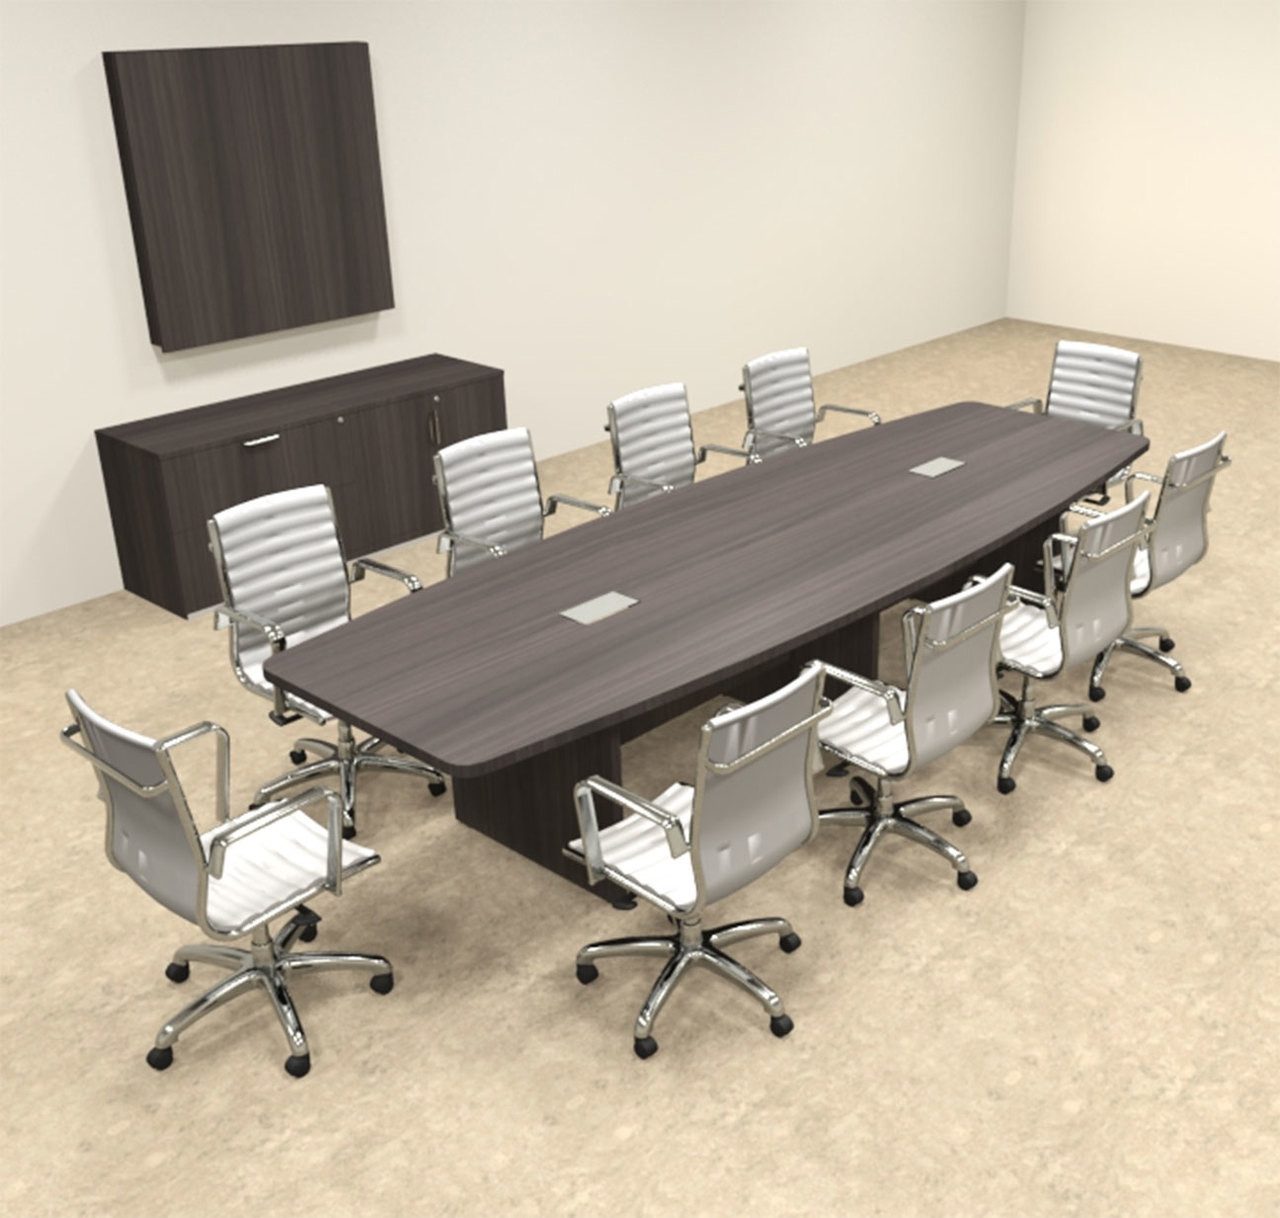 Modern Boat Shapedd 12' Feet Conference Table, #OF-CON-C134